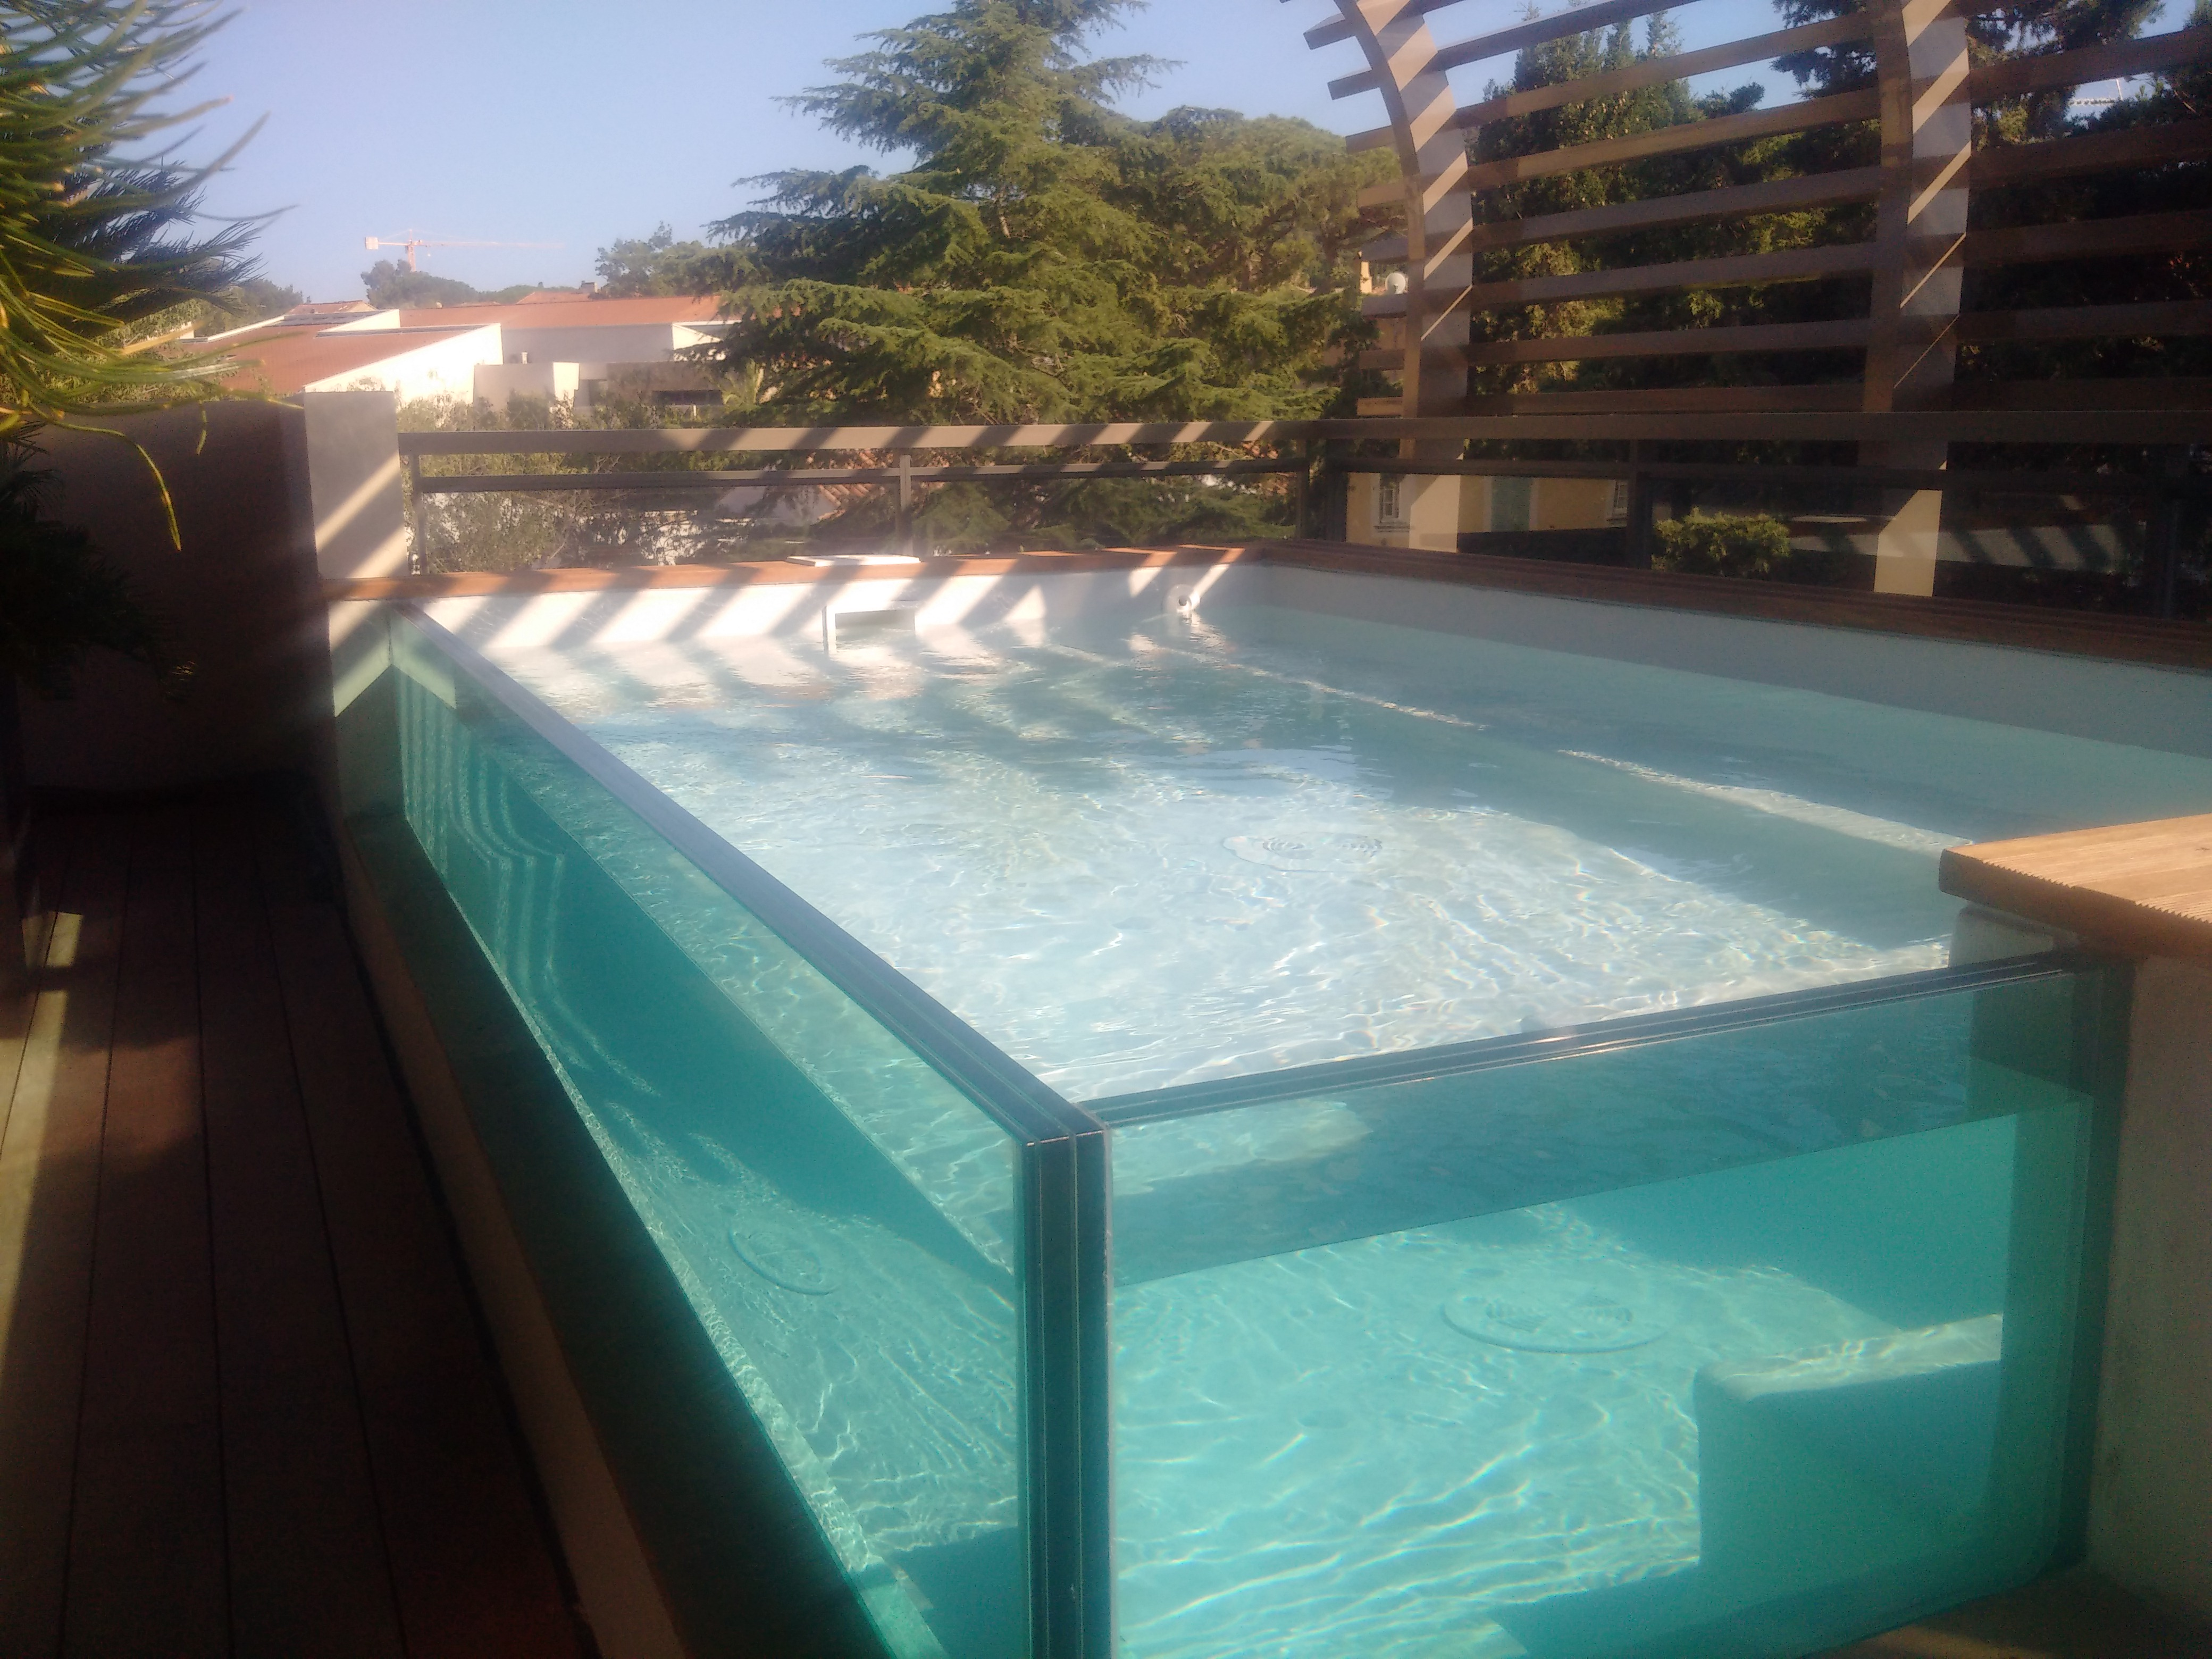 La piscine aquaset piscines traditionnelles brignoles for Verre filtration piscine